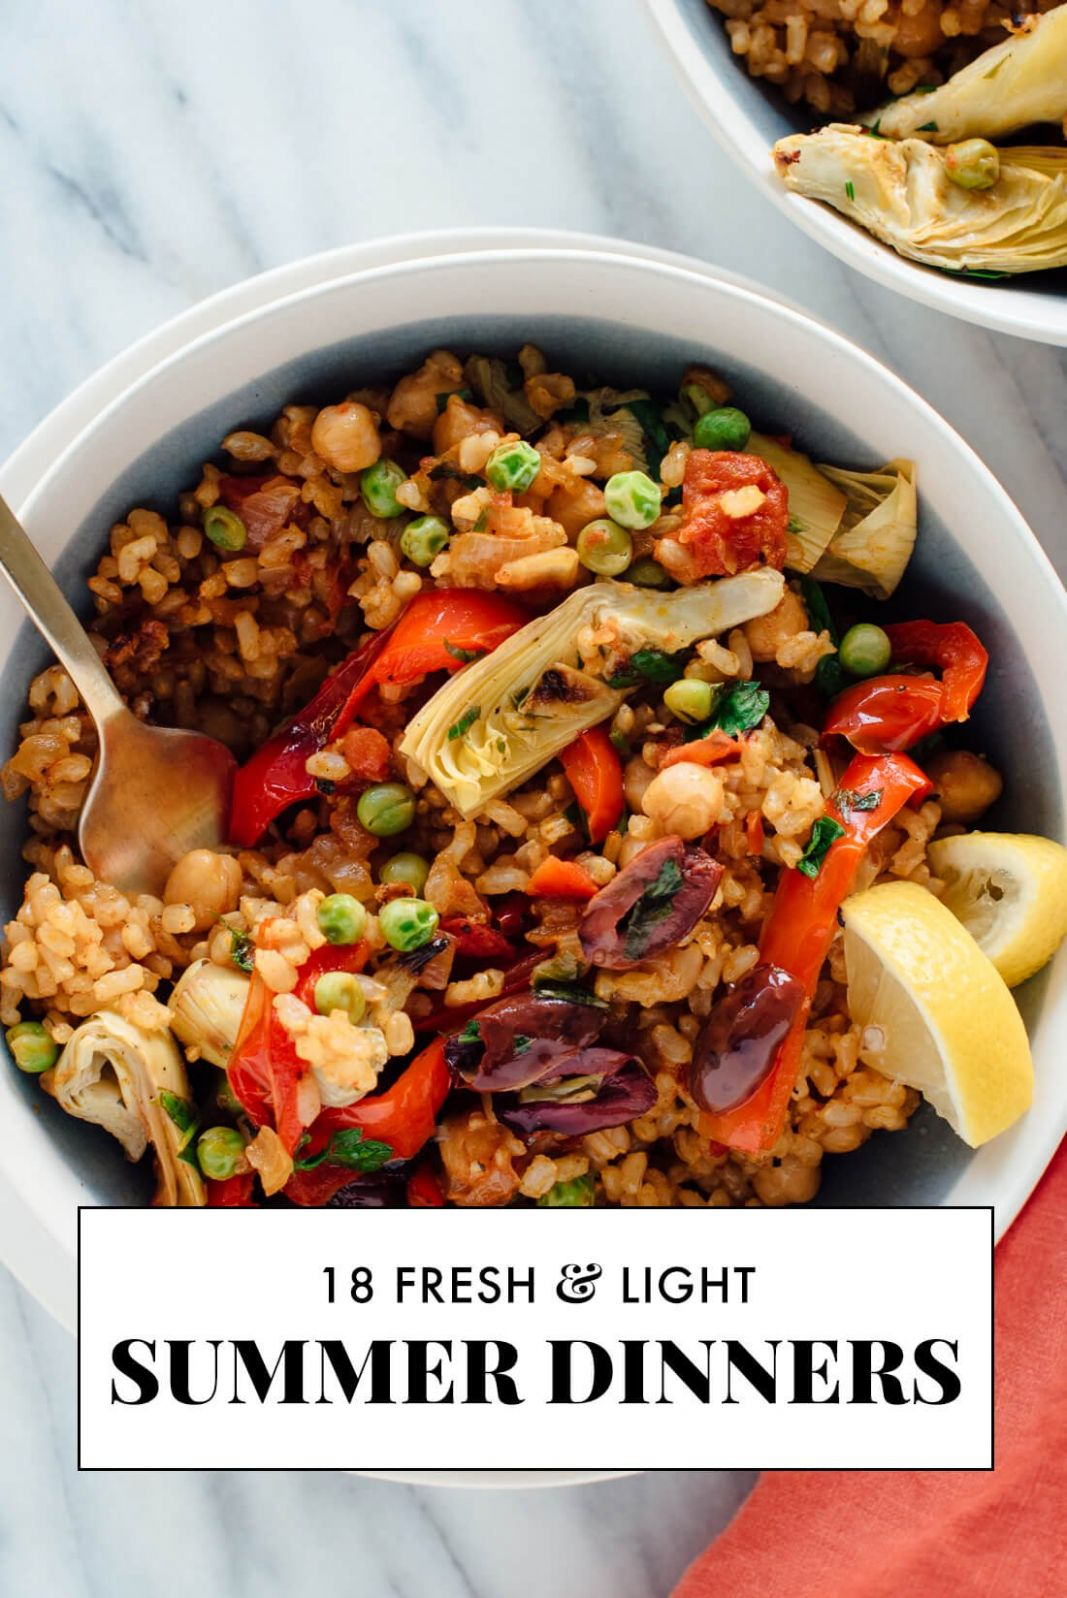 10 Light Summer Dinner Recipes - Cookie and Kate